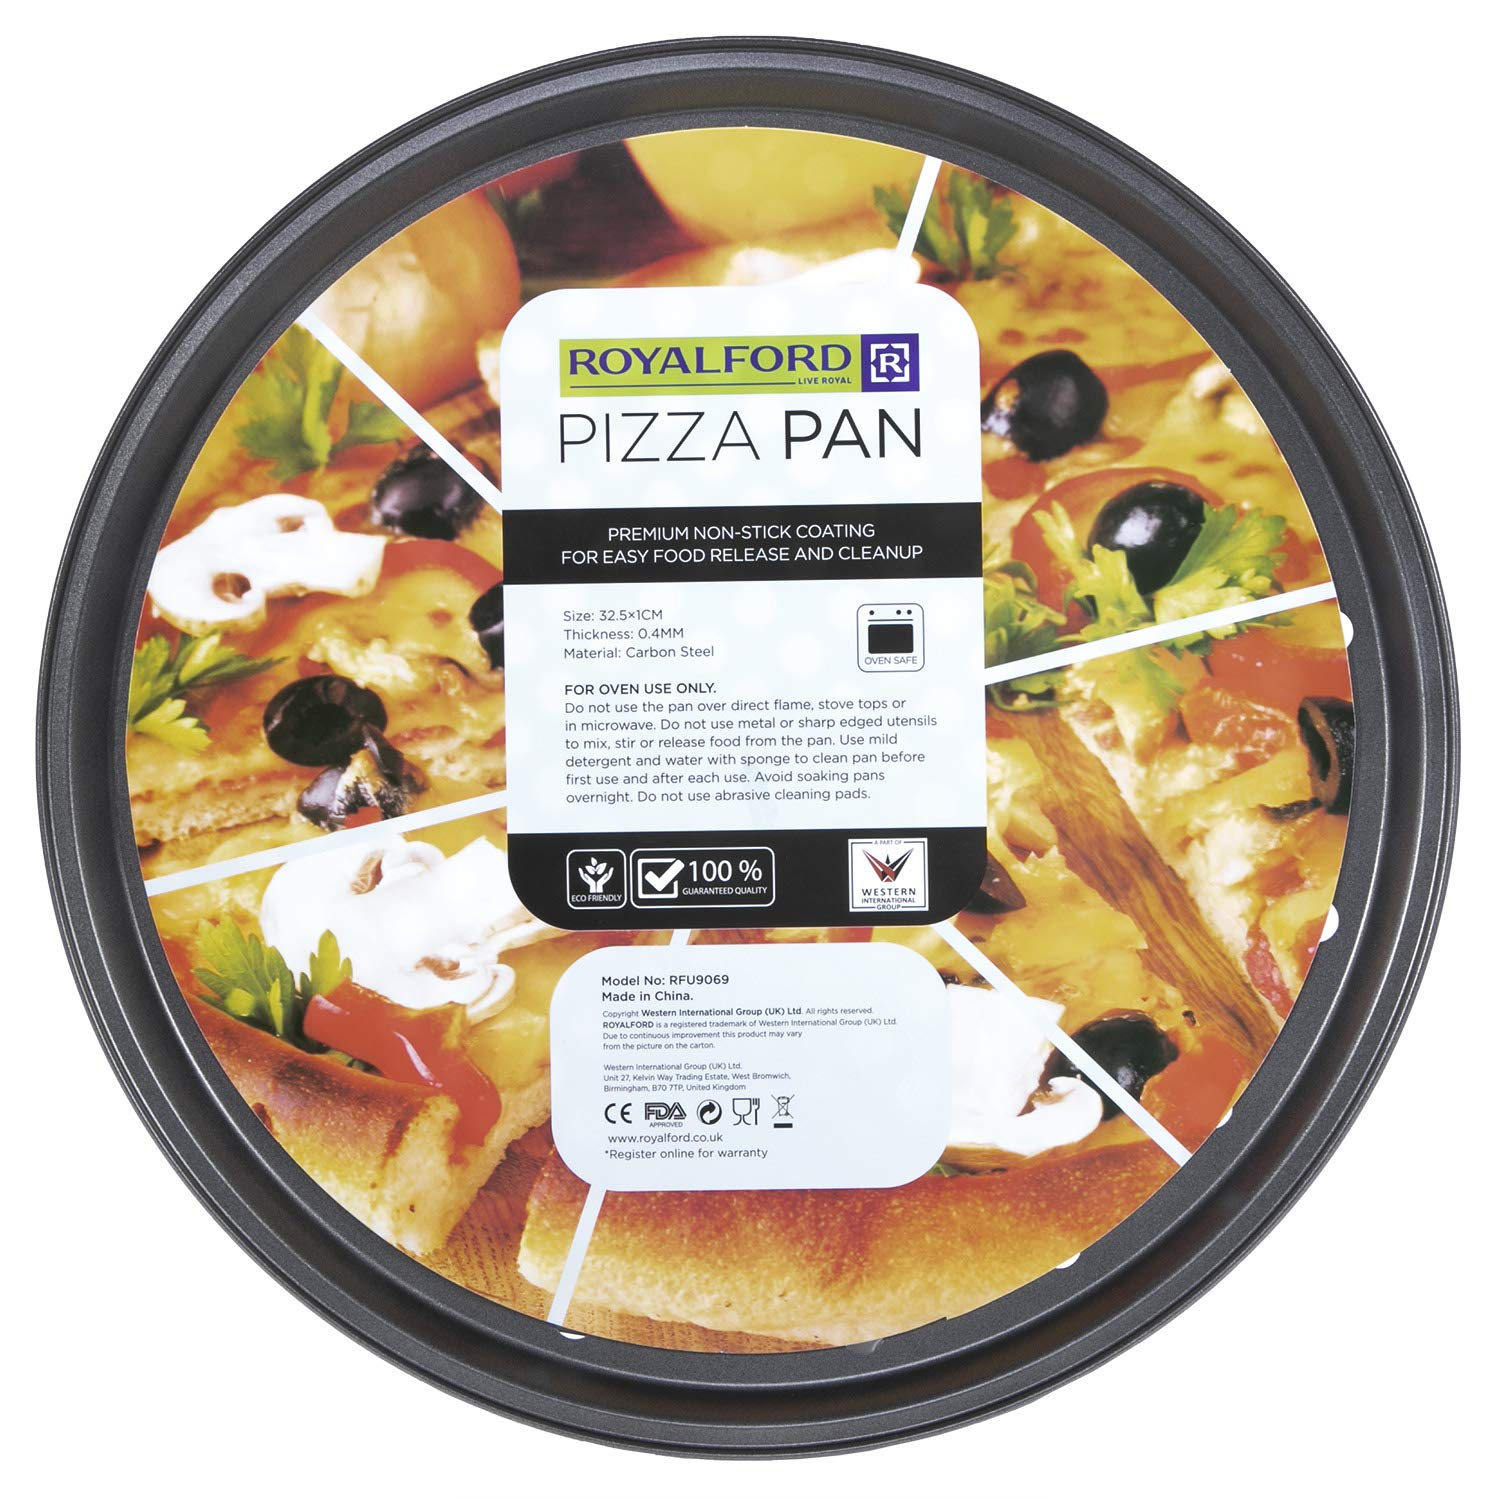 Royalford Pizza Pan Carbon Steel Aerated Holes Oven Safe Premium Non Stick Coating 04mm Thick Pfoa Ptfe Free